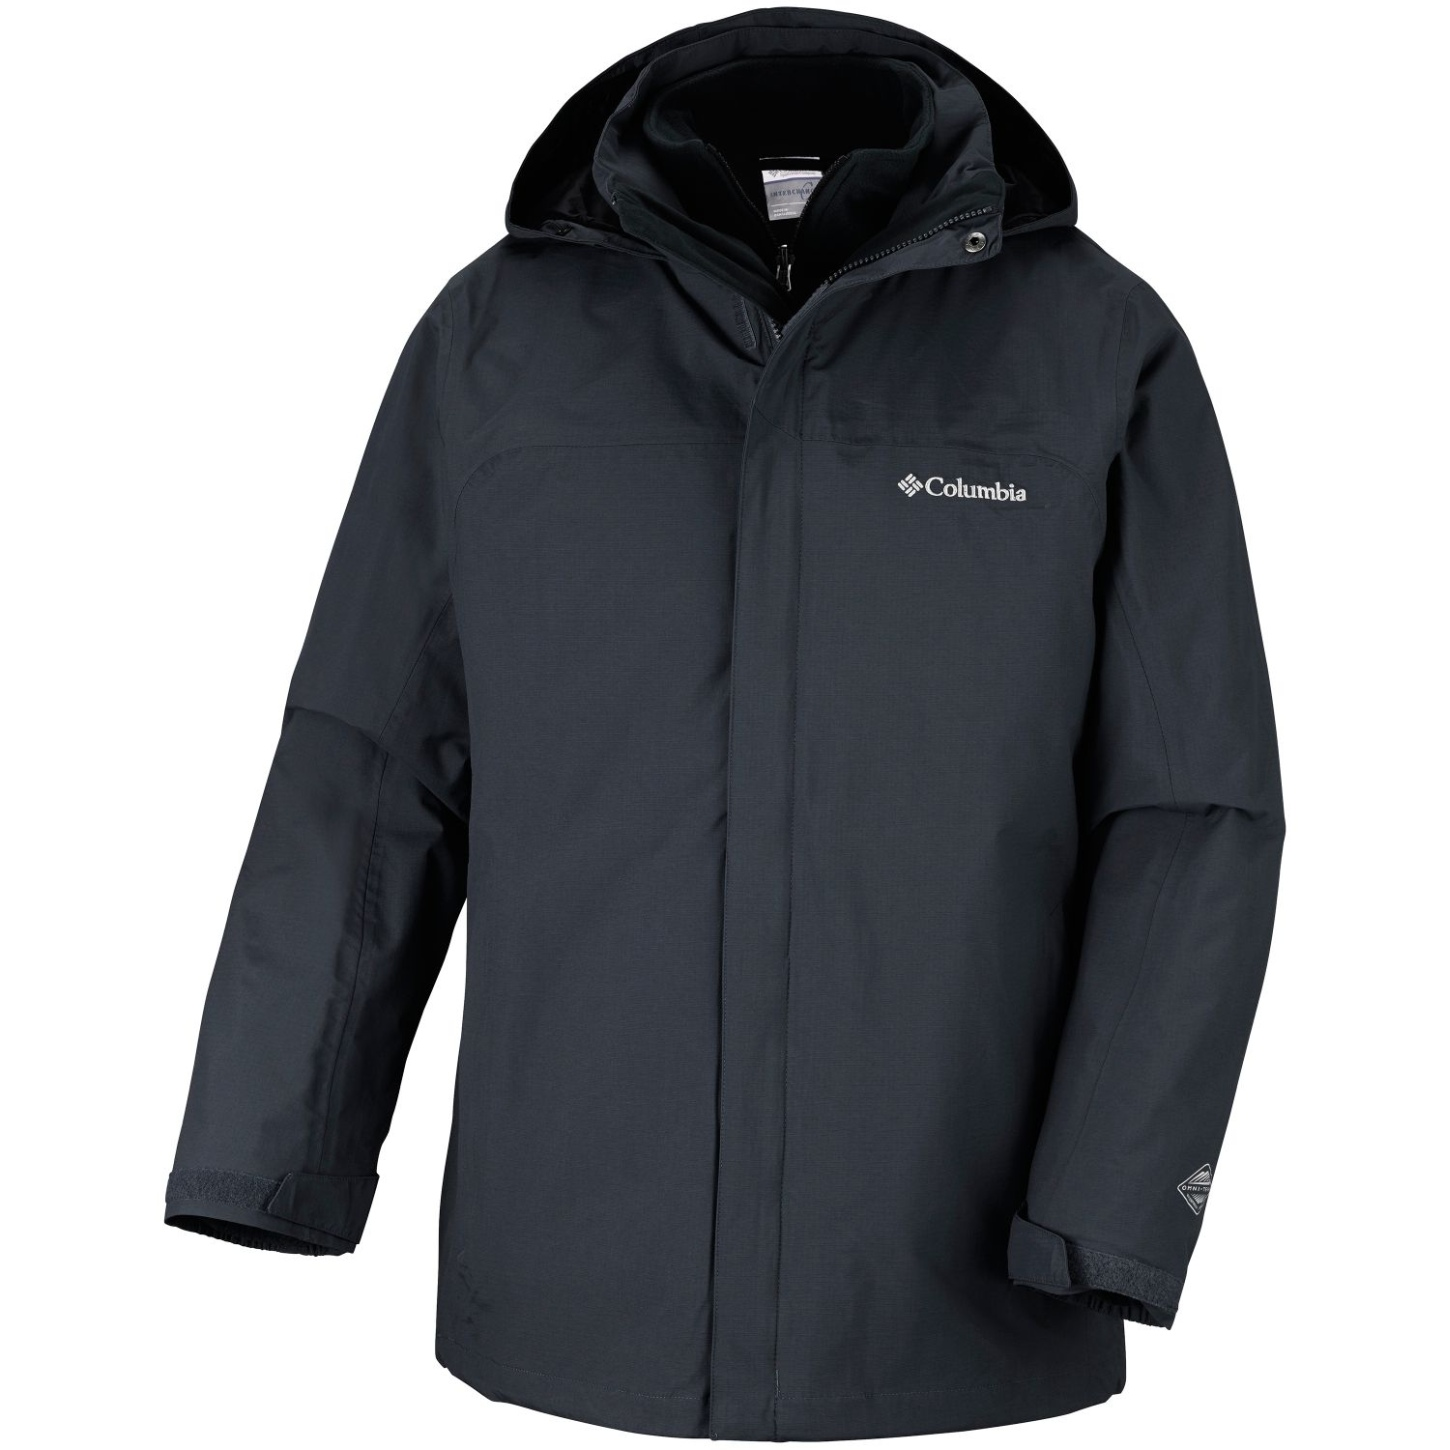 Columbia Men's Mission Air Interchange Jacket Black, Black-30